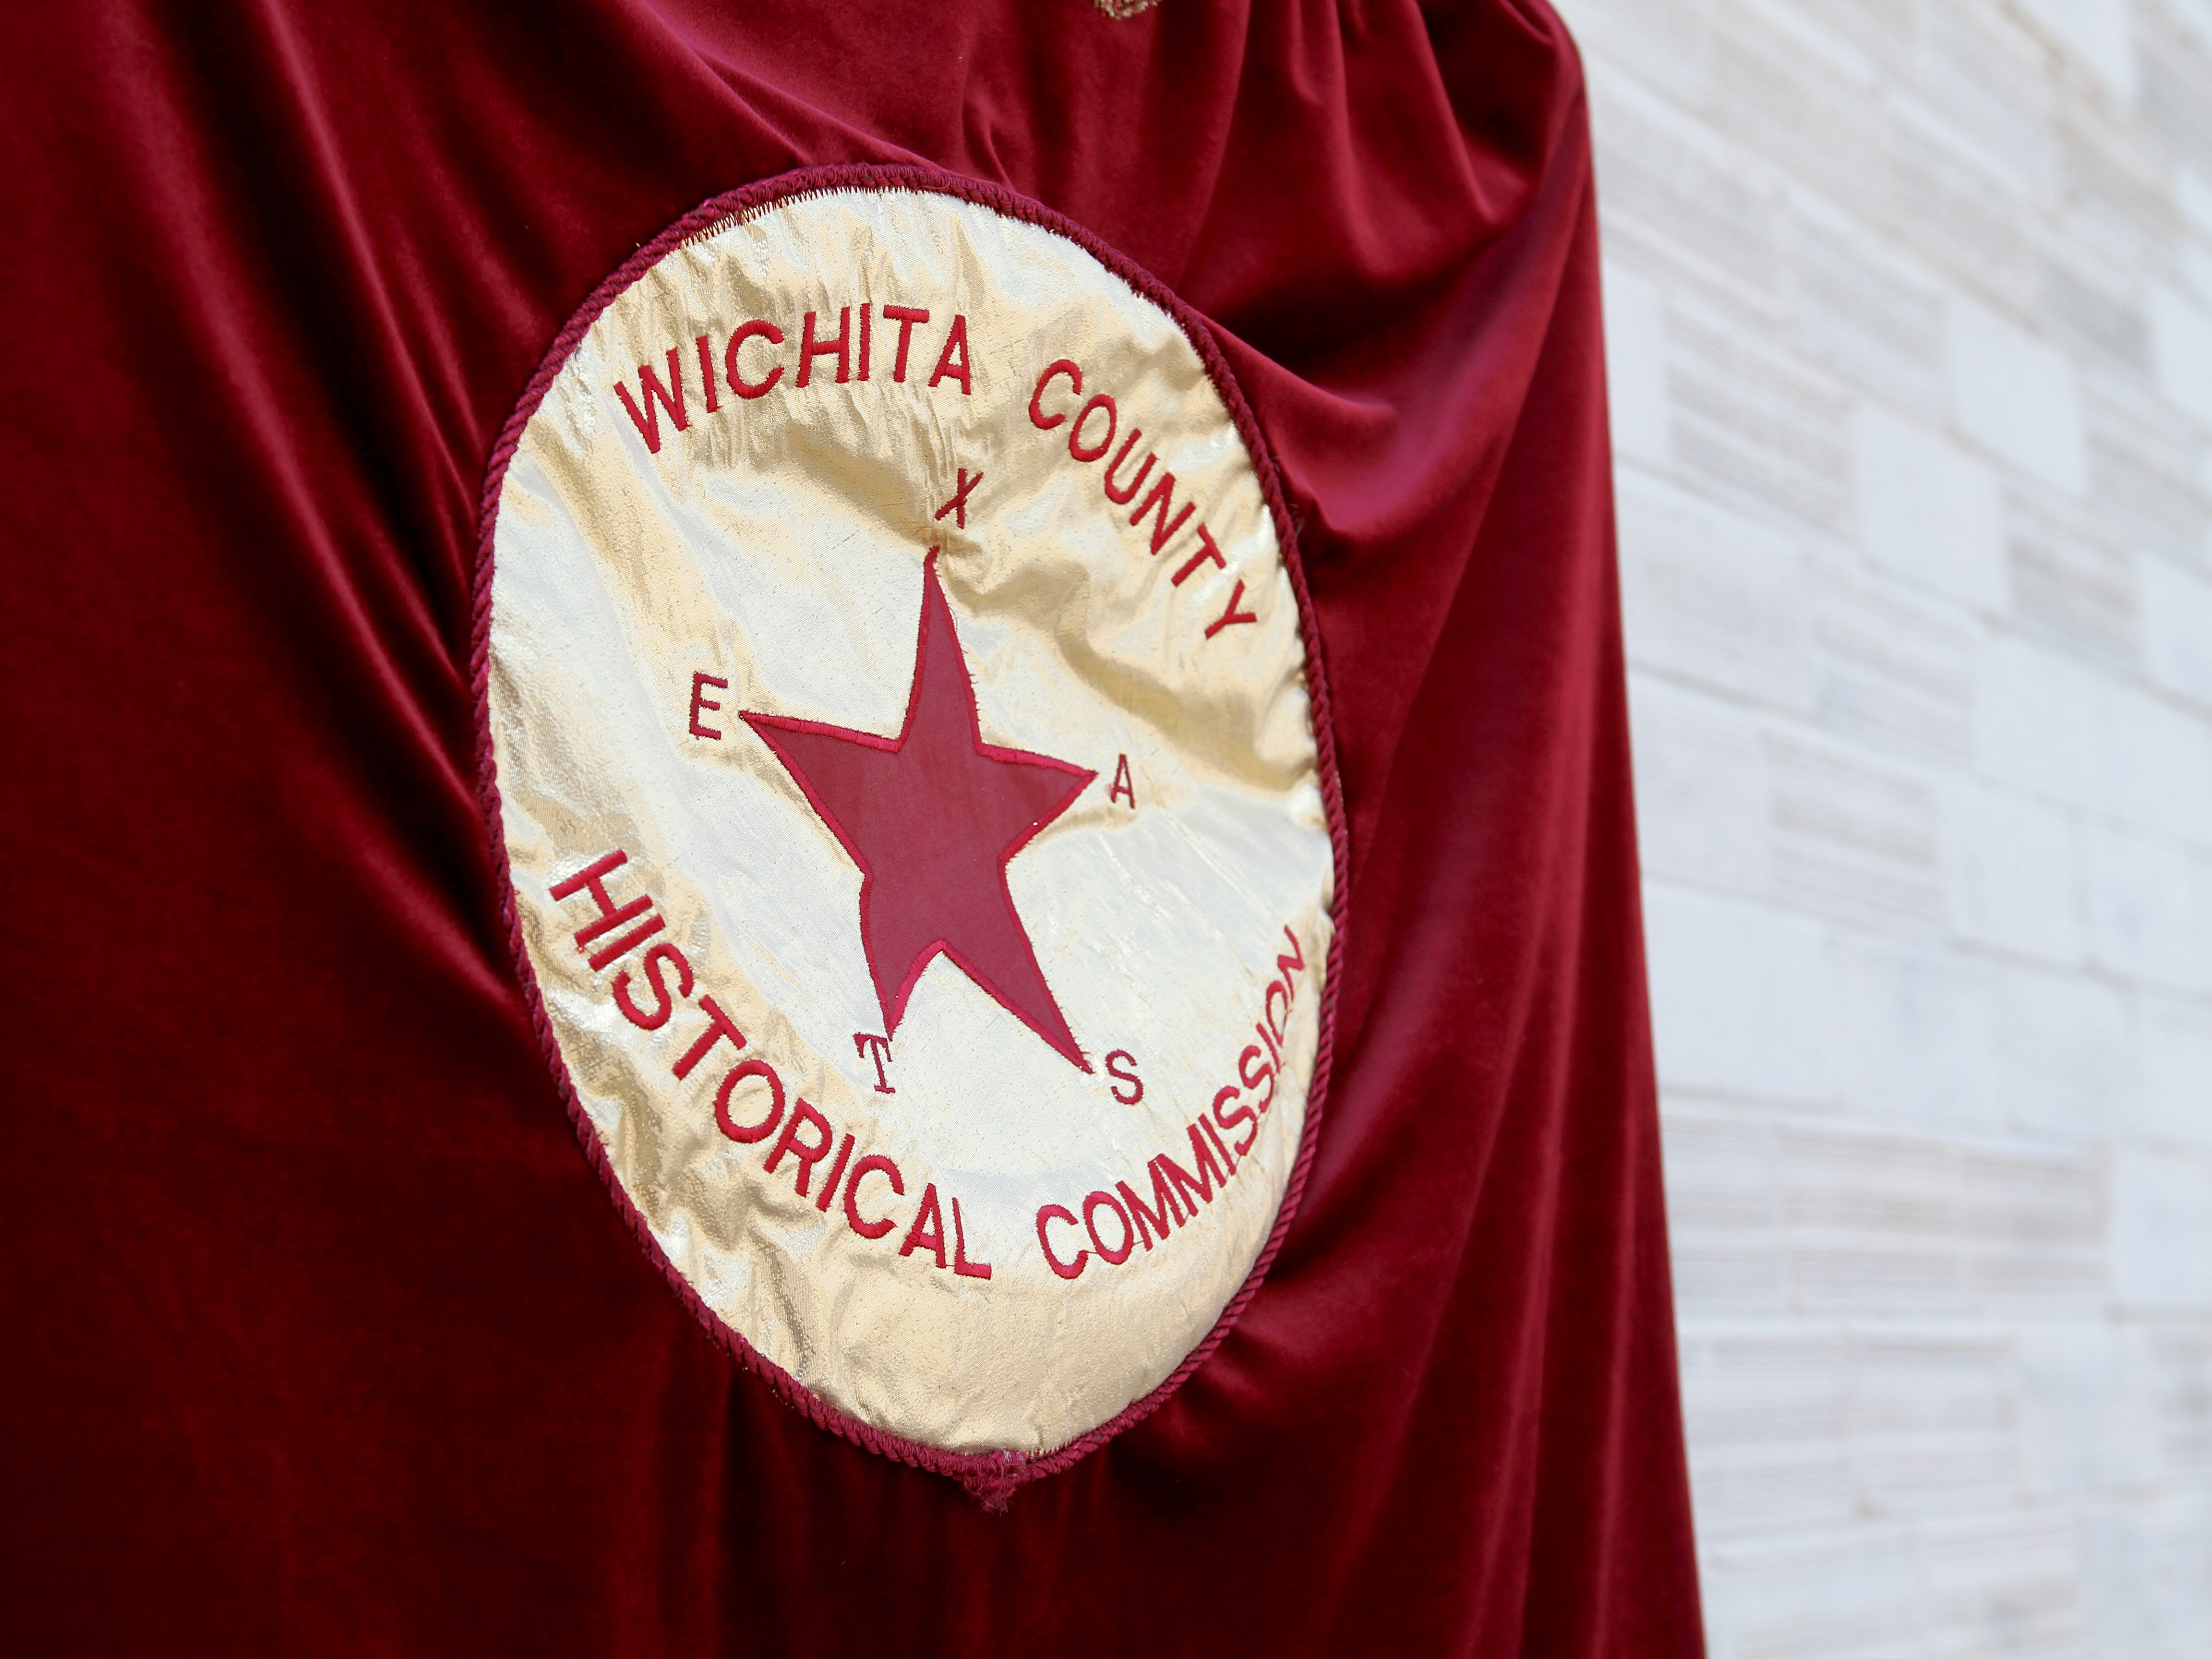 The Wichita County Historical Commission recognized the Hotter'N Hell Hundred Monday, May 6, 2019, with an Official Texas Historical Marker at a dedication ceremony at the HH100 Clubhouse at 104 Scott.